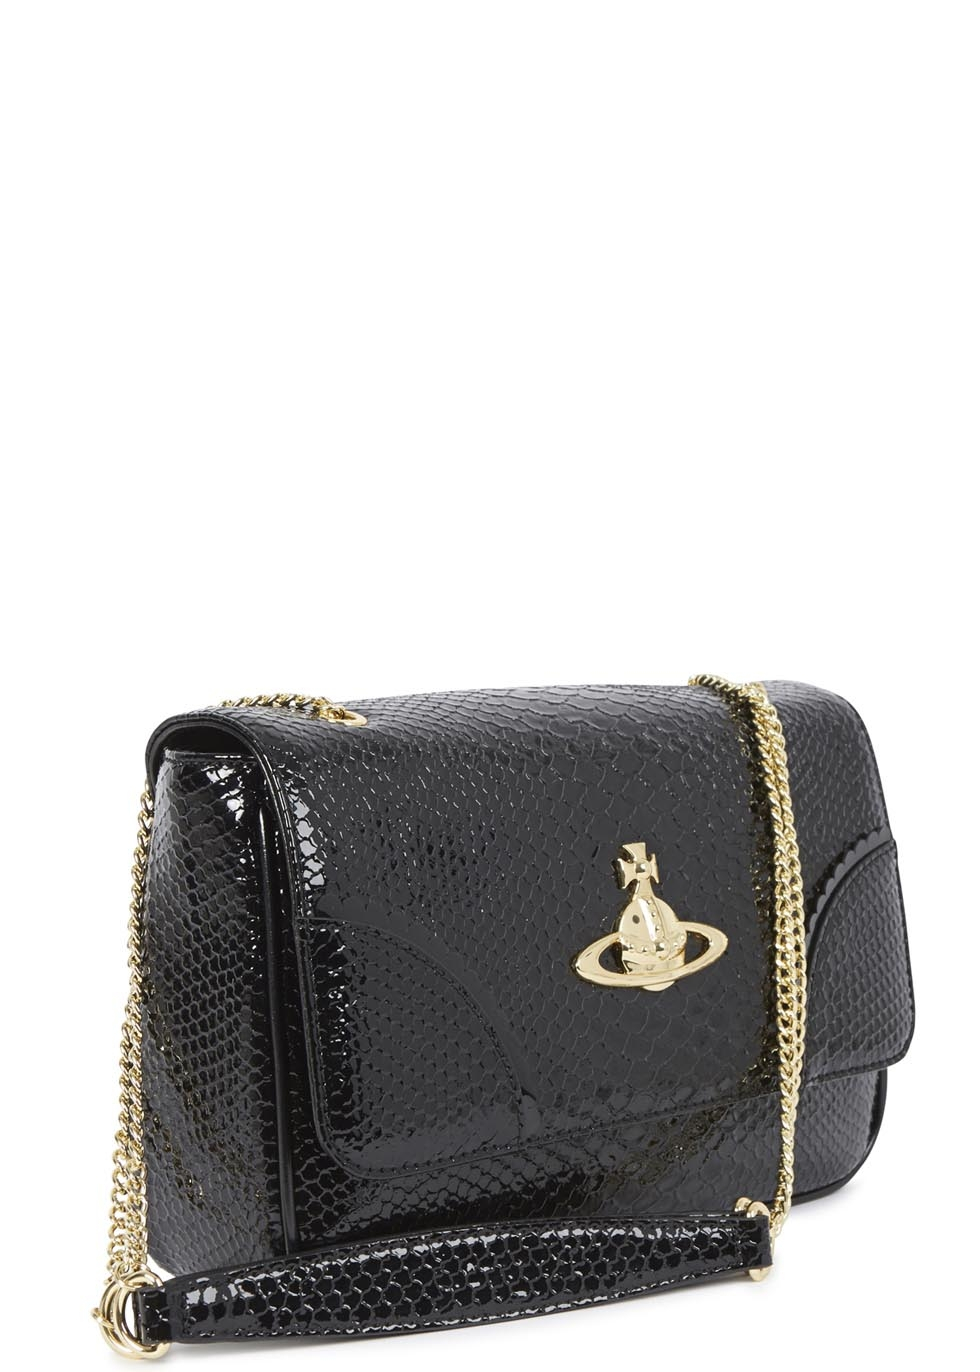 ae65593eac2 Vivienne Westwood Anglomania Frilly Snake Black Patent Leather Shoulder Bag  in Black - Lyst